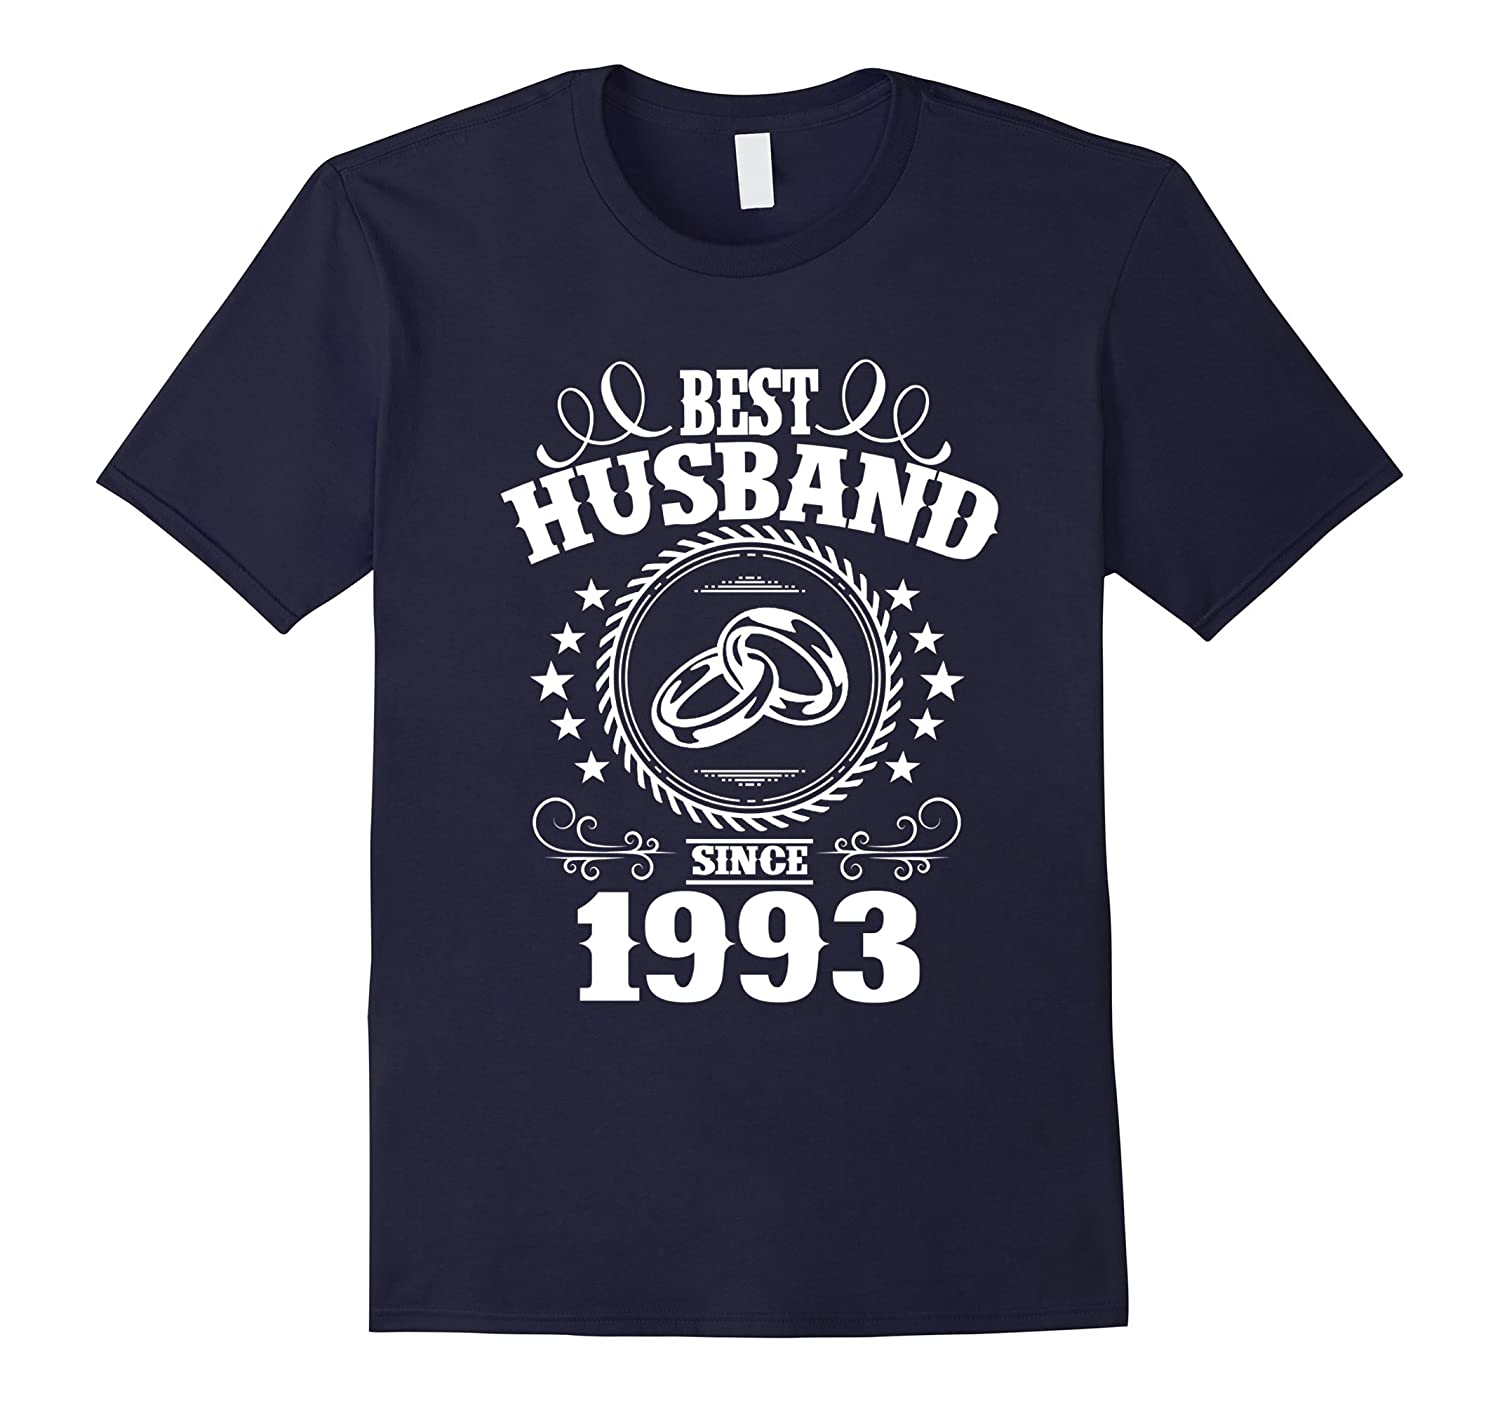 24th Wedding Anniversary T-Shirts For Husband From Wife-PL